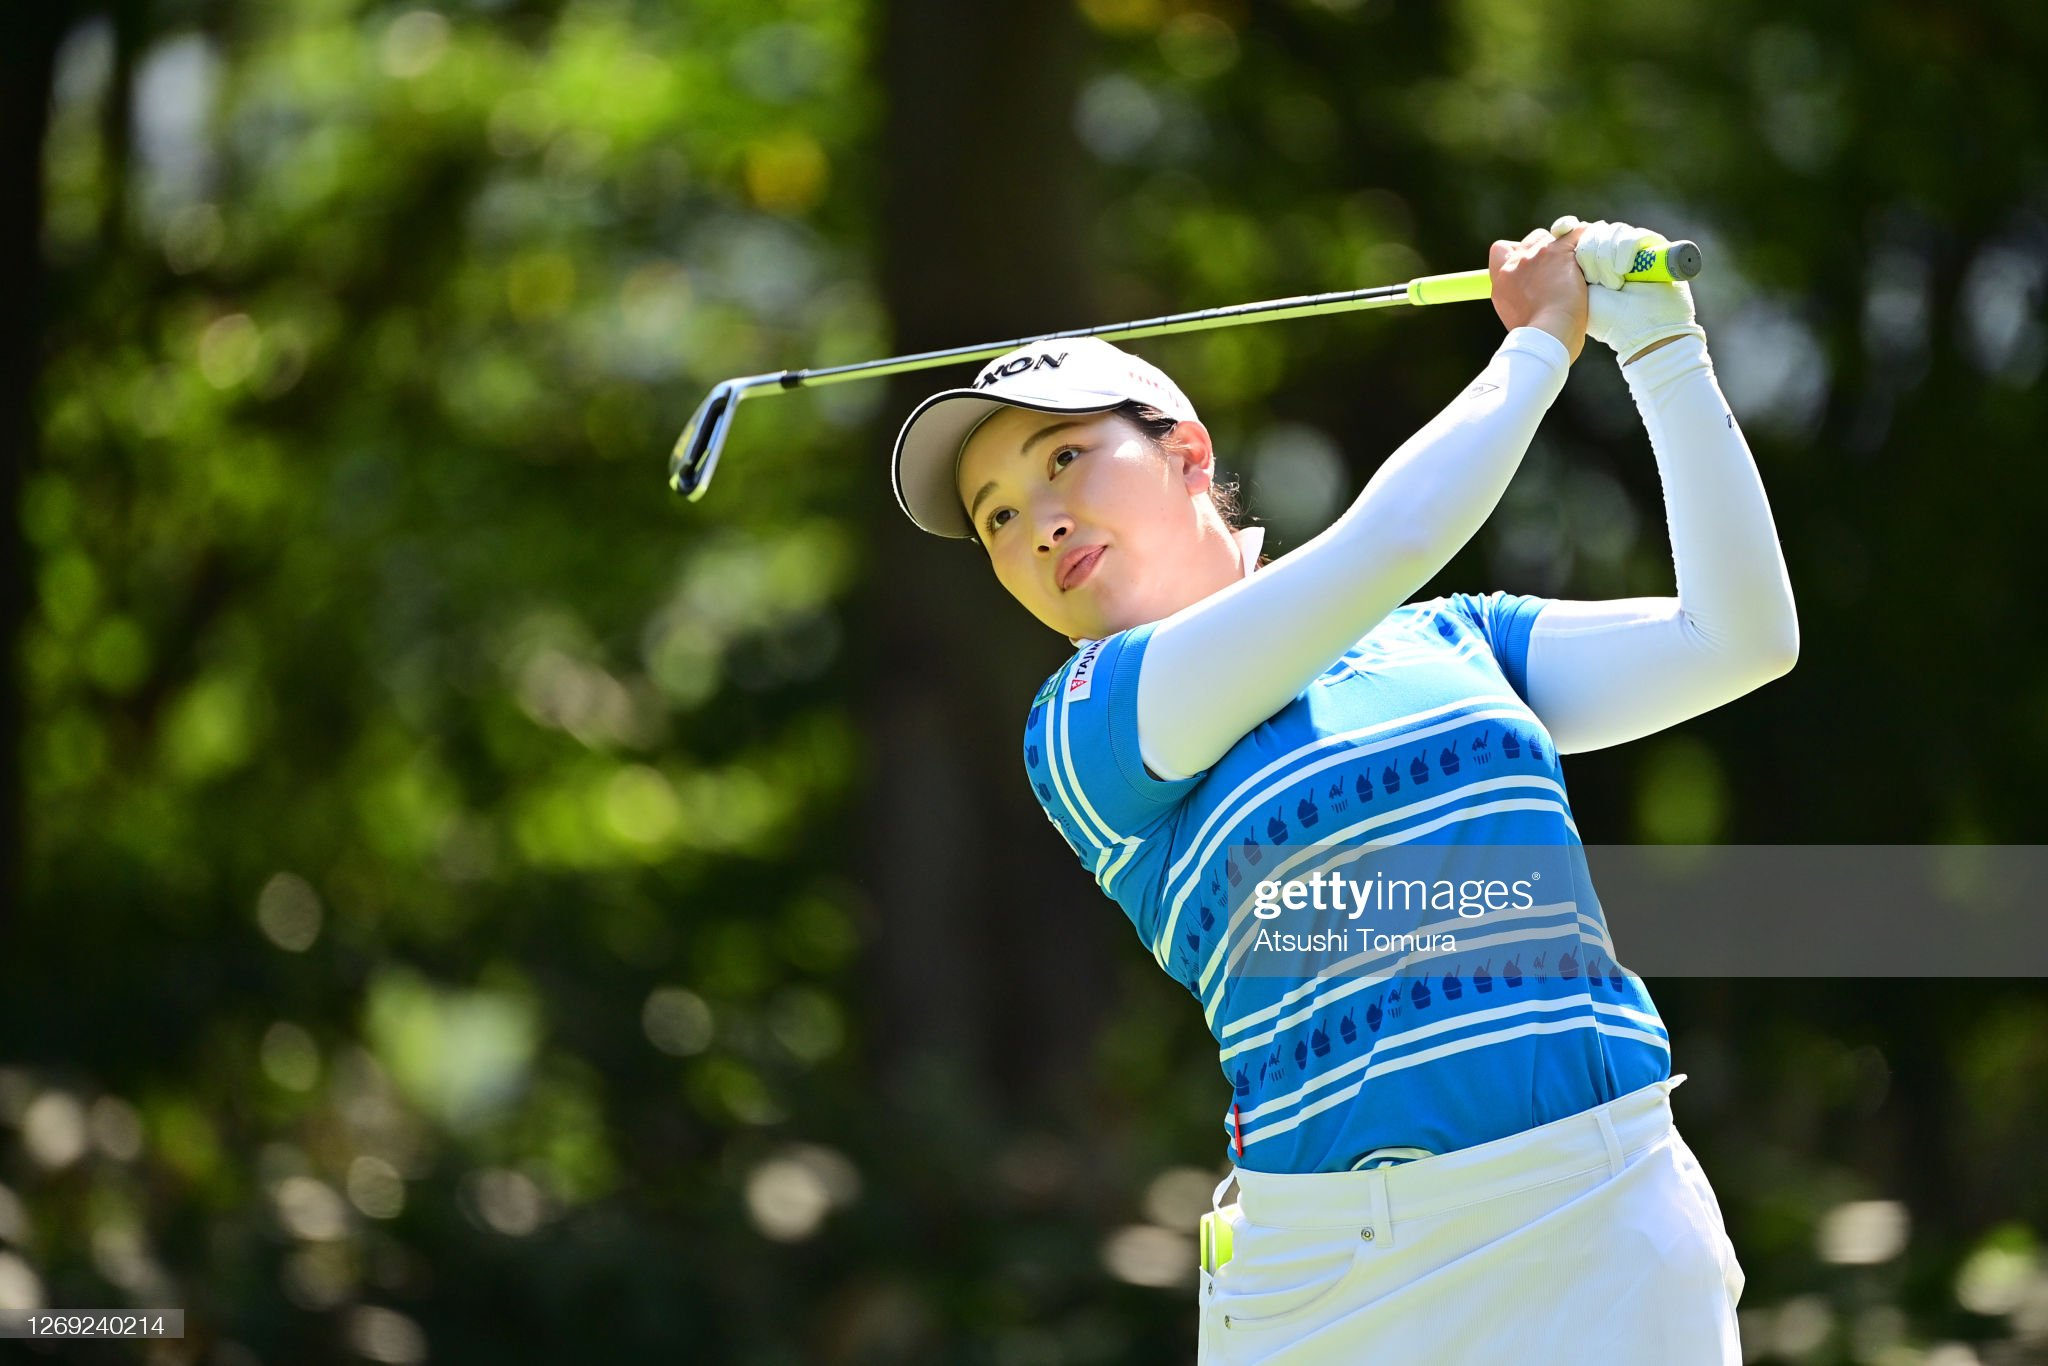 https://media.gettyimages.com/photos/sakura-koiwai-of-japan-hits-her-tee-shot-on-the-7th-hole-during-the-picture-id1269240214?s=2048x2048